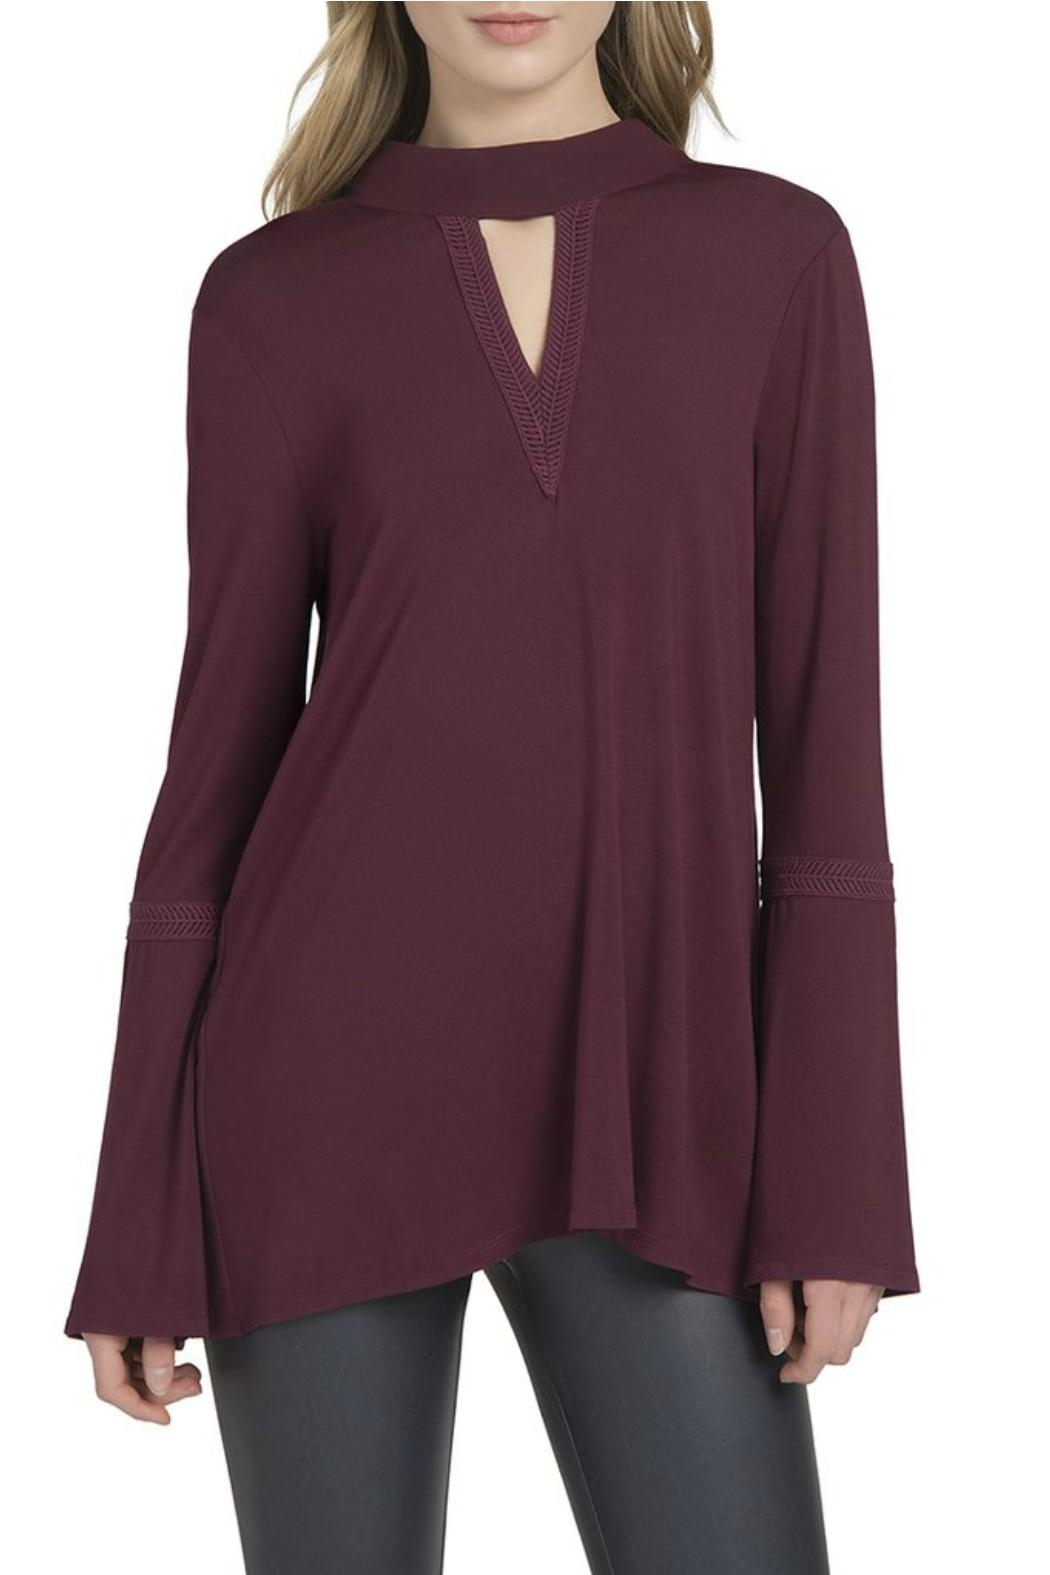 Lysse Ainsley Bell-Sleeve Top - Front Cropped Image